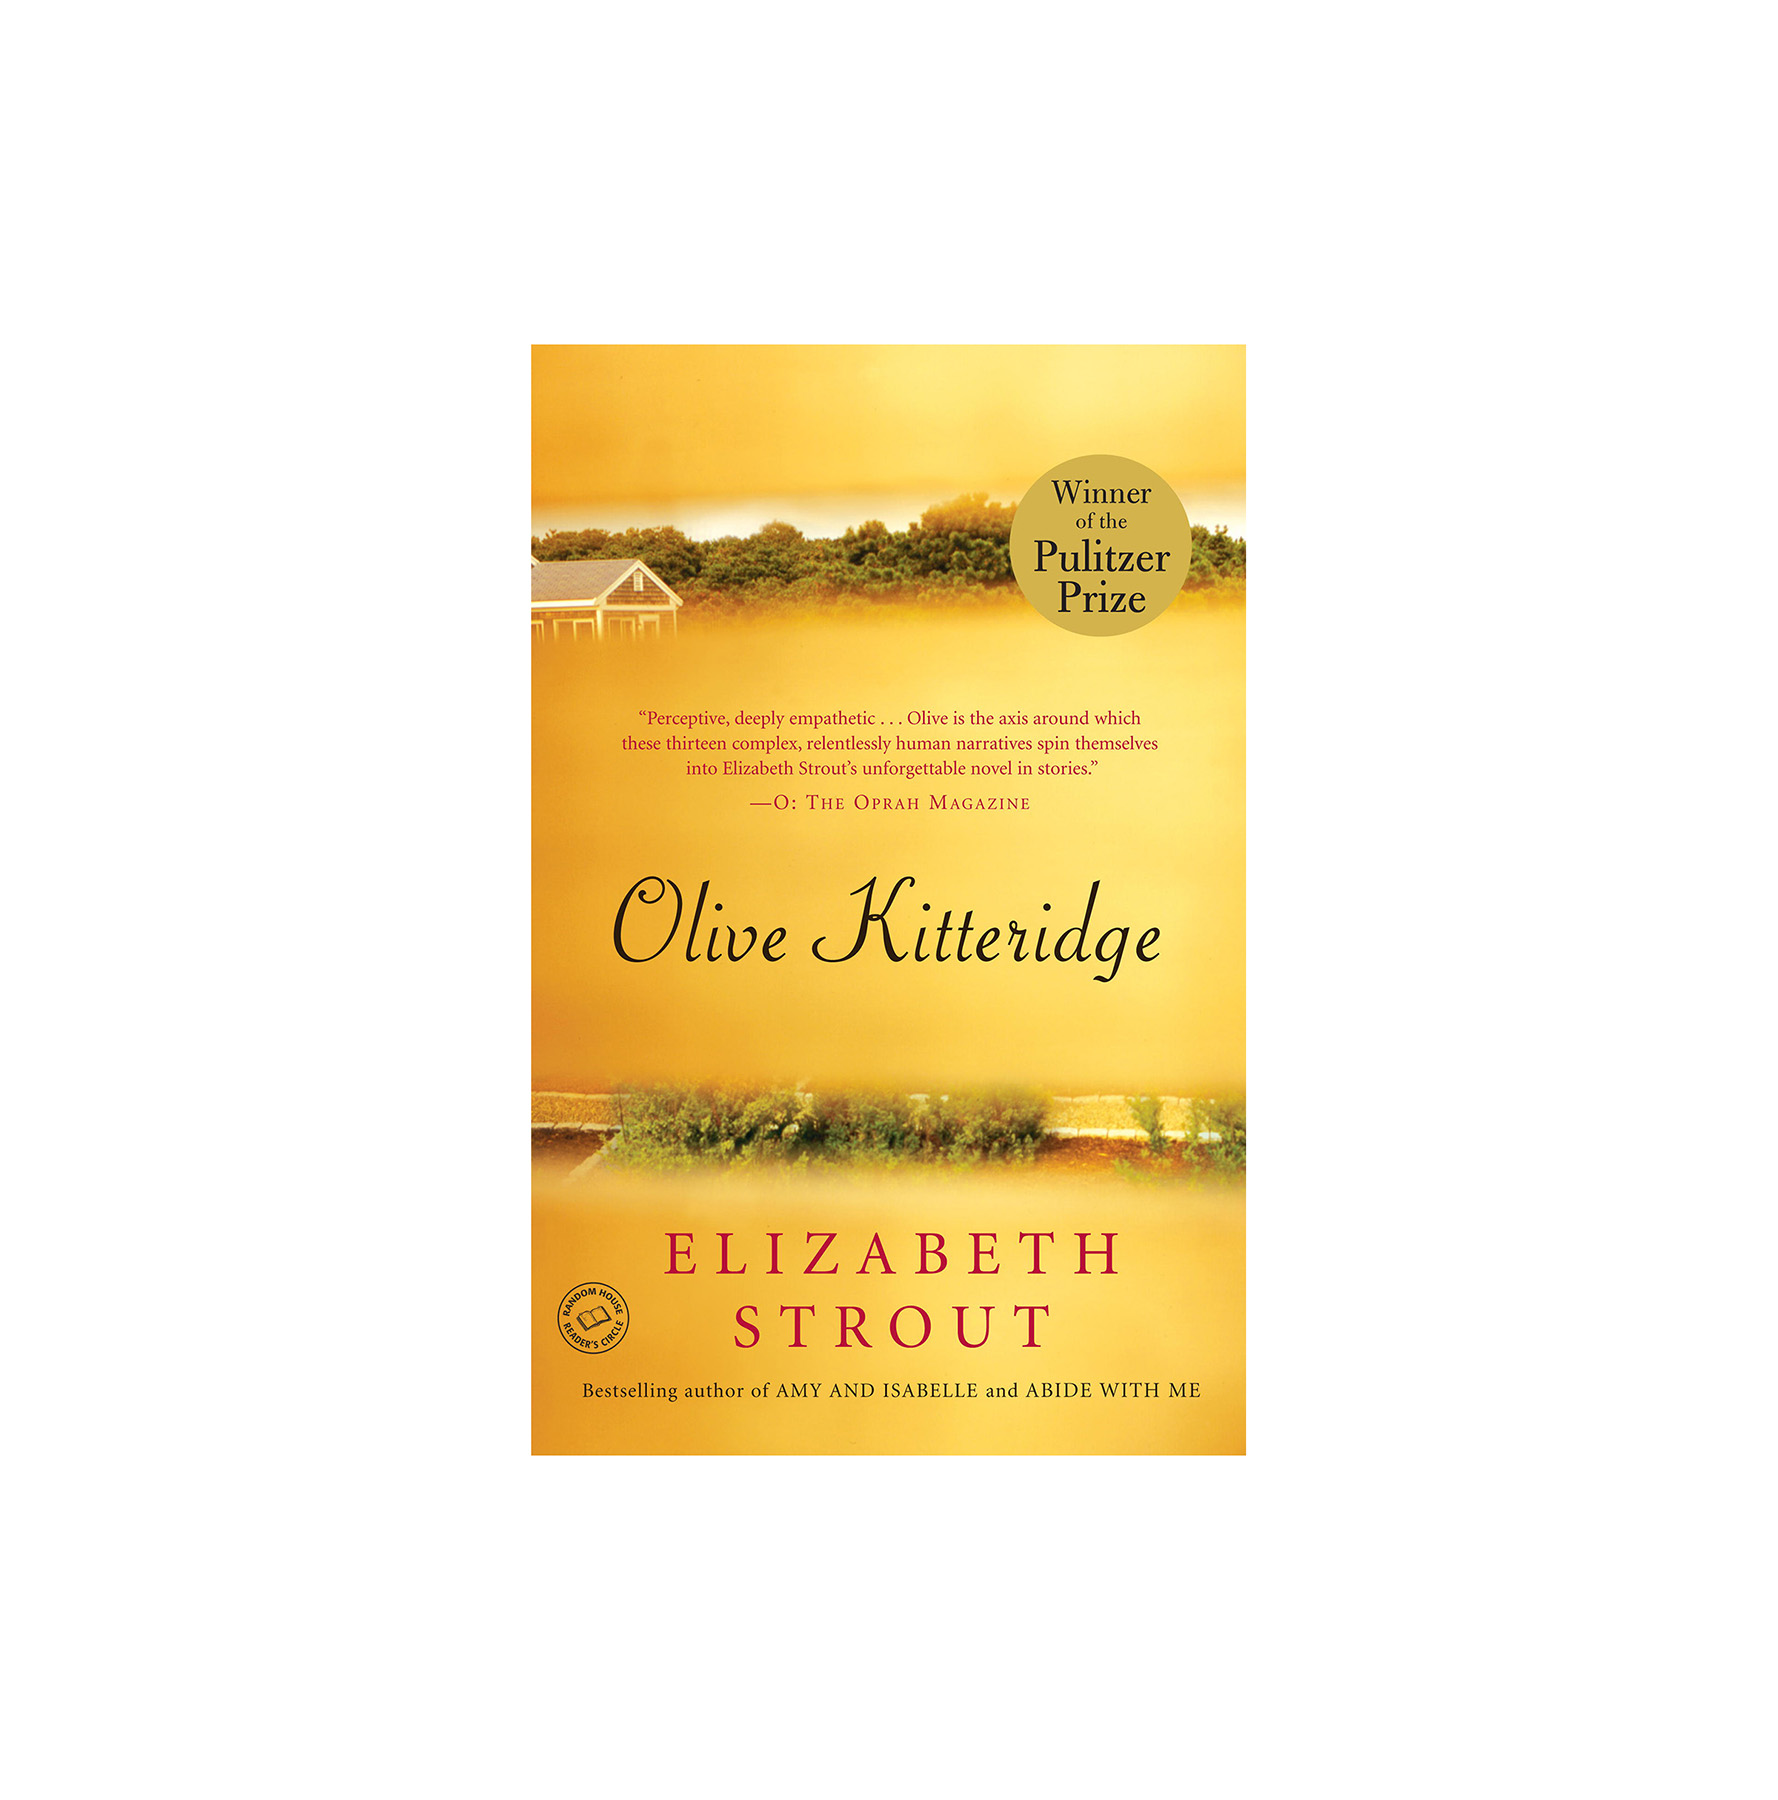 Olive Kitteridge, by Elizabeth Strout